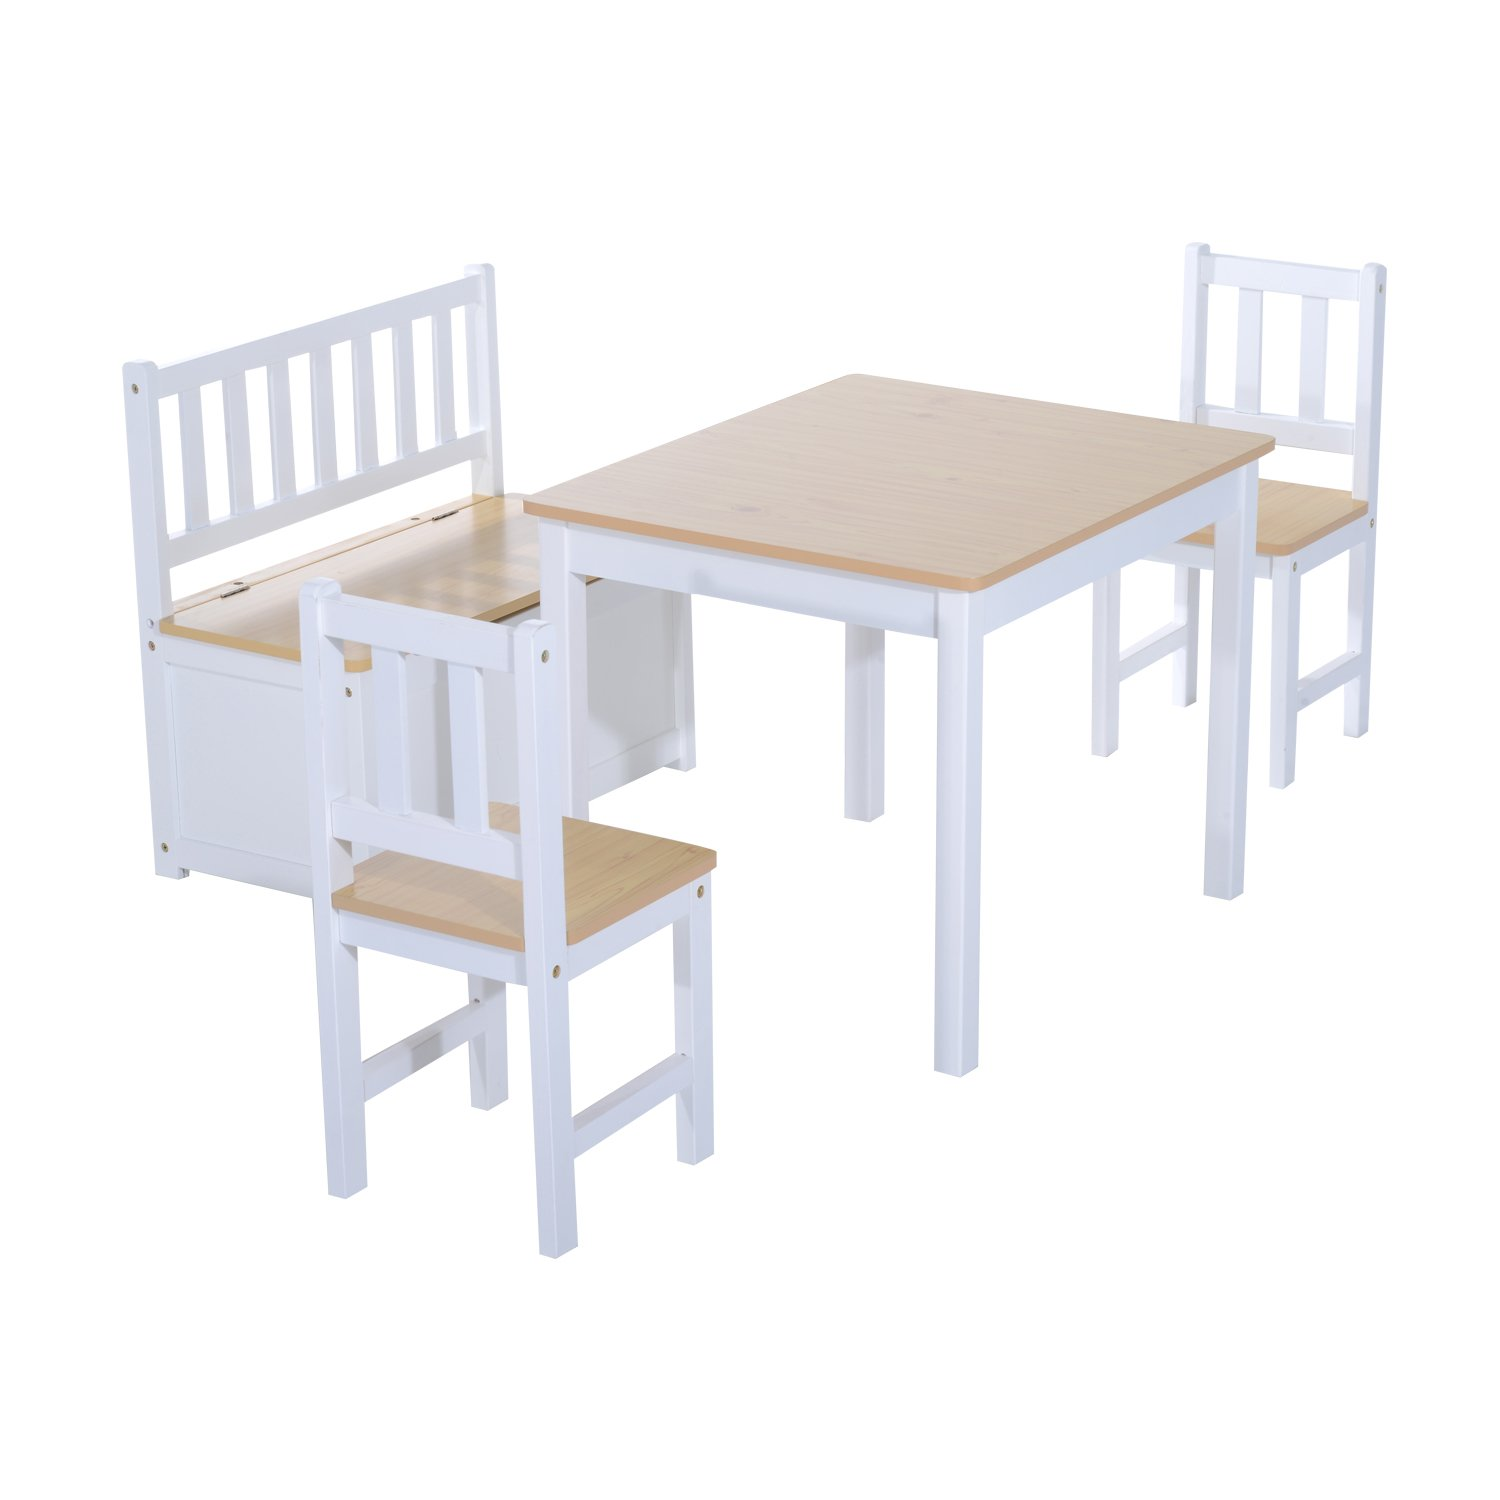 HOMOCM Wooden B 3PC Kids Table and Chairs Set Mutifunctional Bench